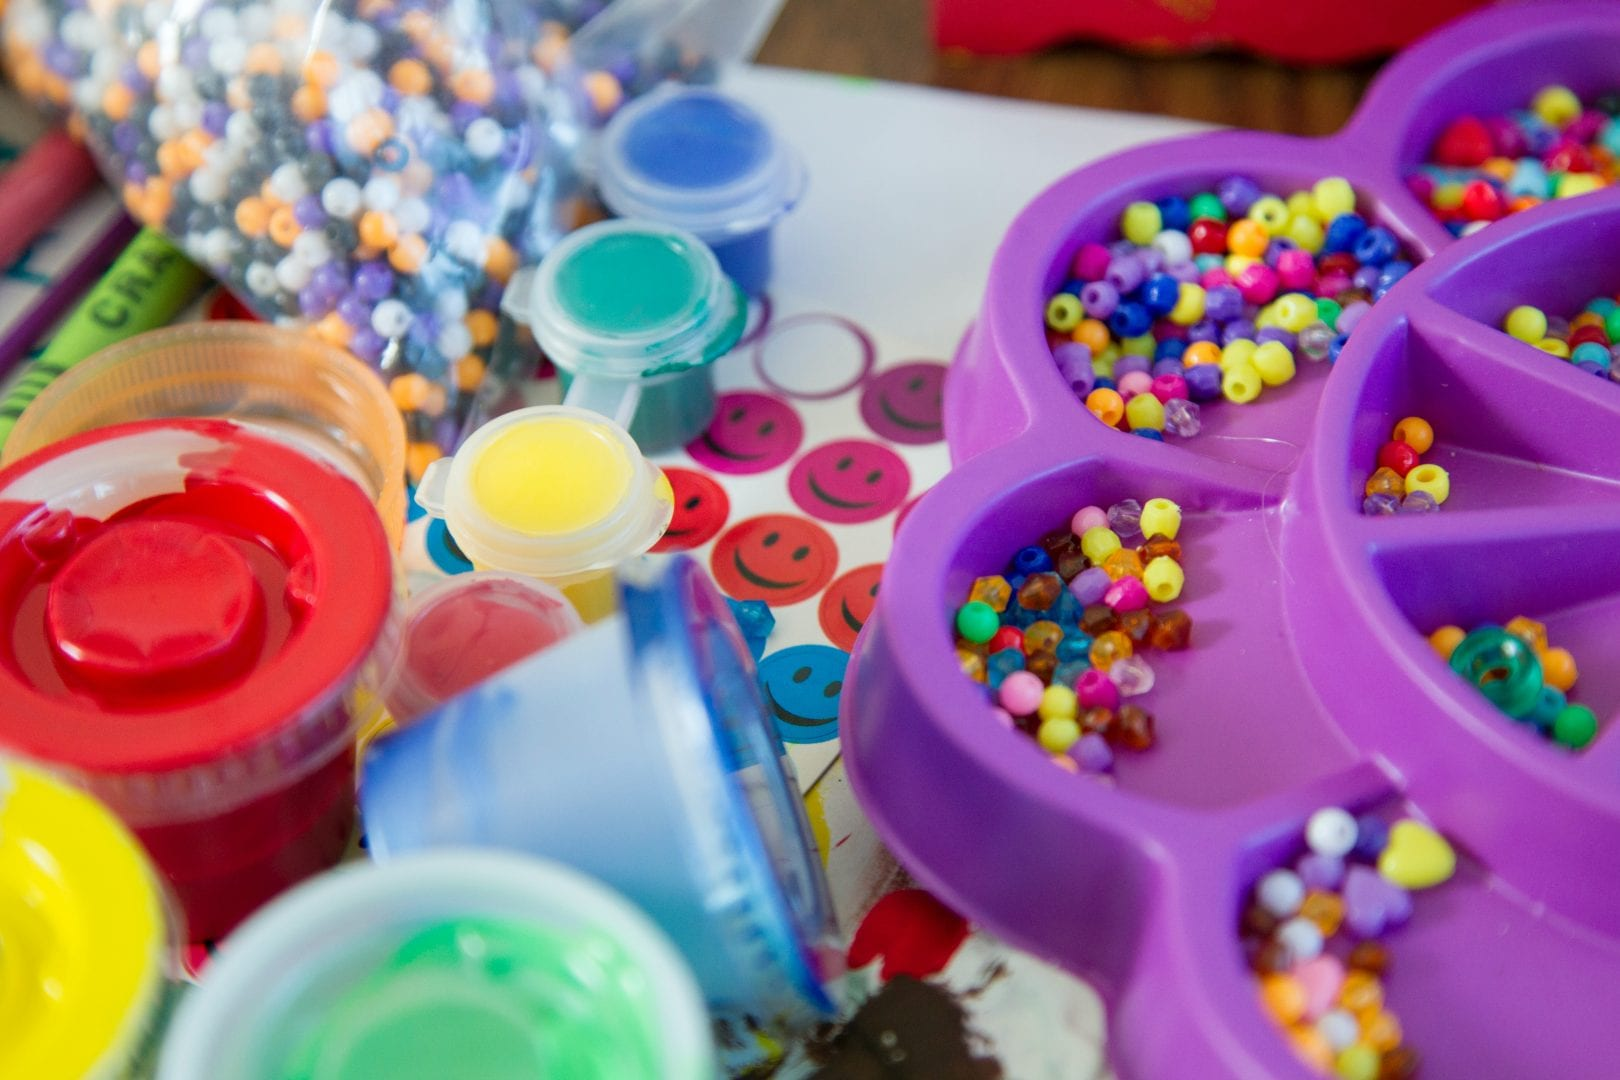 a variety of craft decorations including beads, paint, and stickers